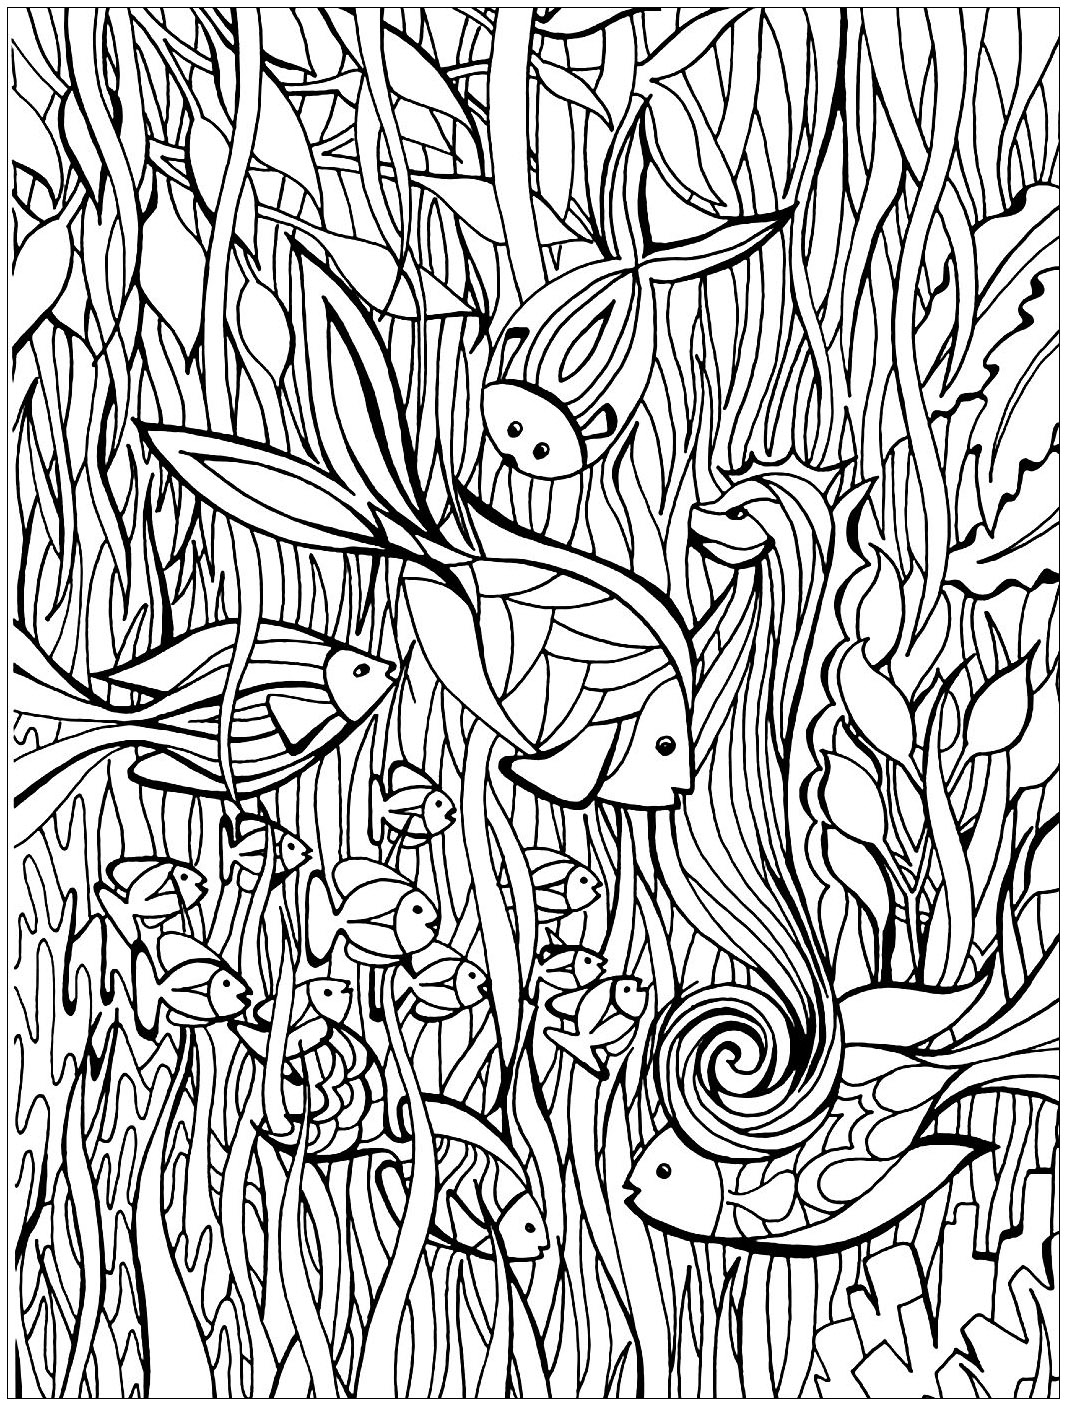 Fish details fishes adult coloring pages for Adult fish coloring pages